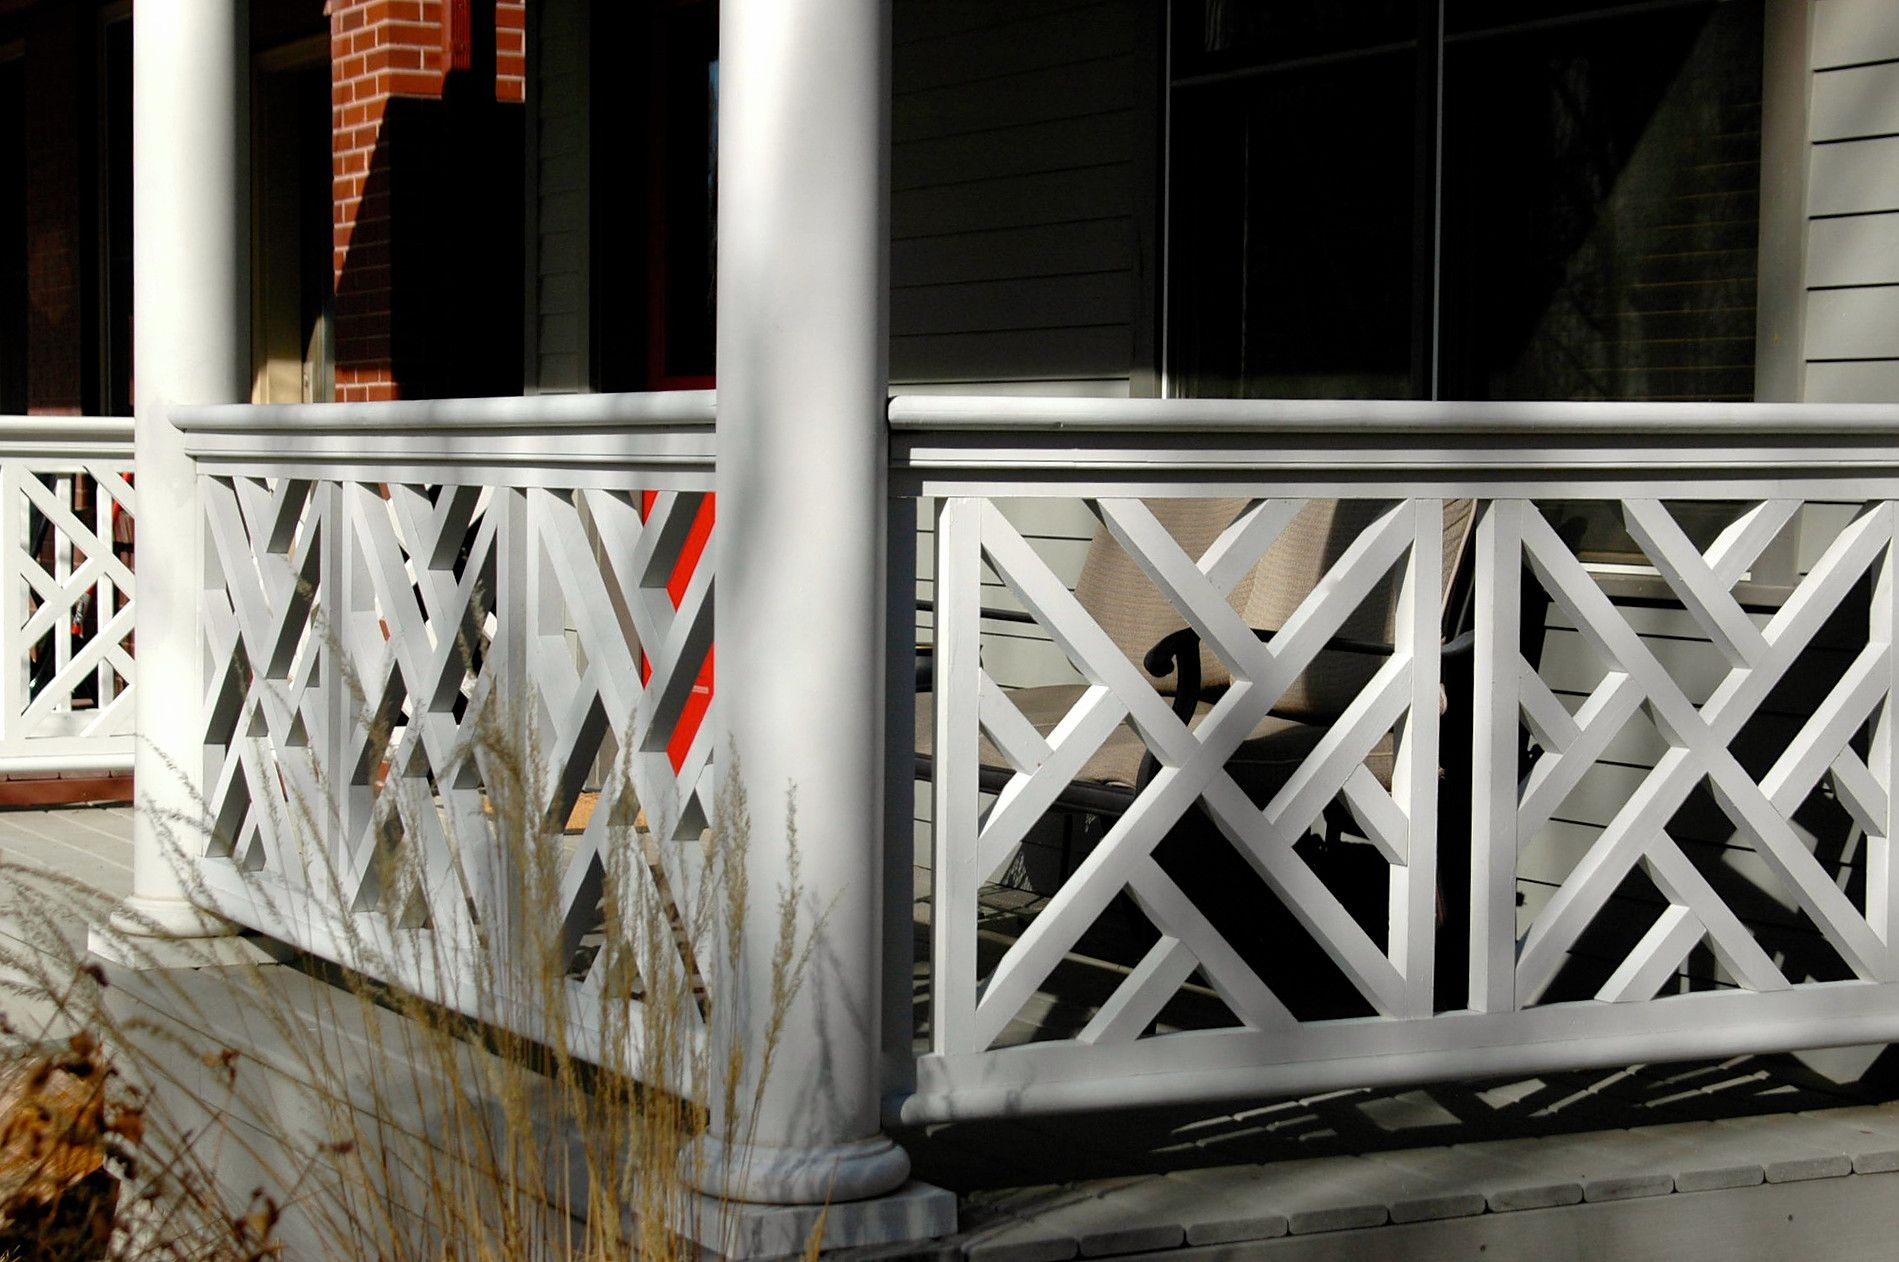 Chippendale Railings - Propeller Pattern   Chinese ...